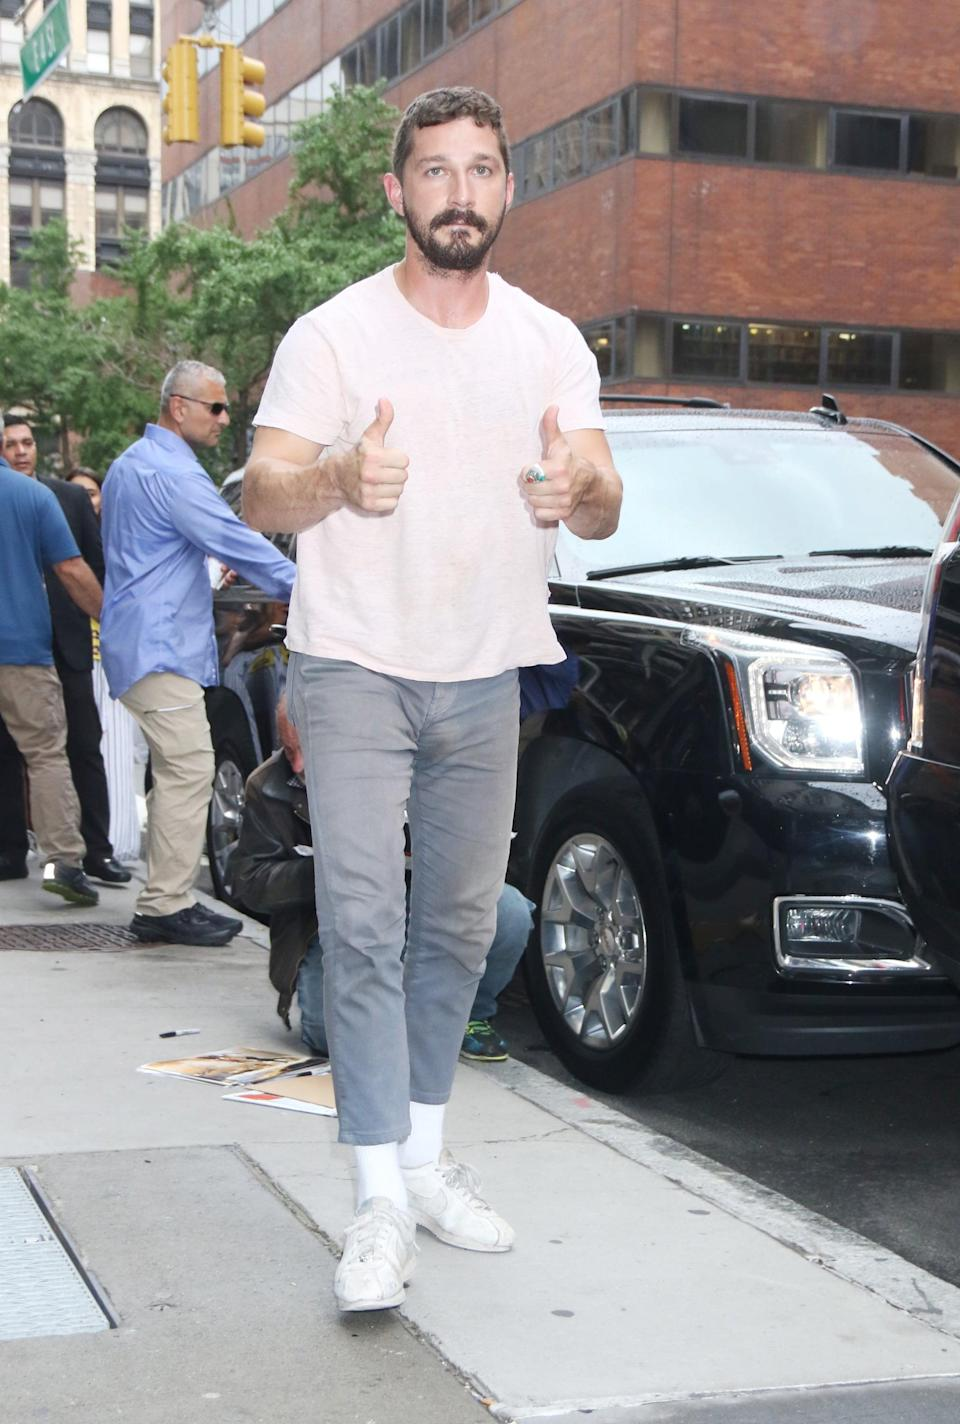 <p>A simple t-shirt with gray jeans can go a long way with a couple of thumbs up signs.</p>